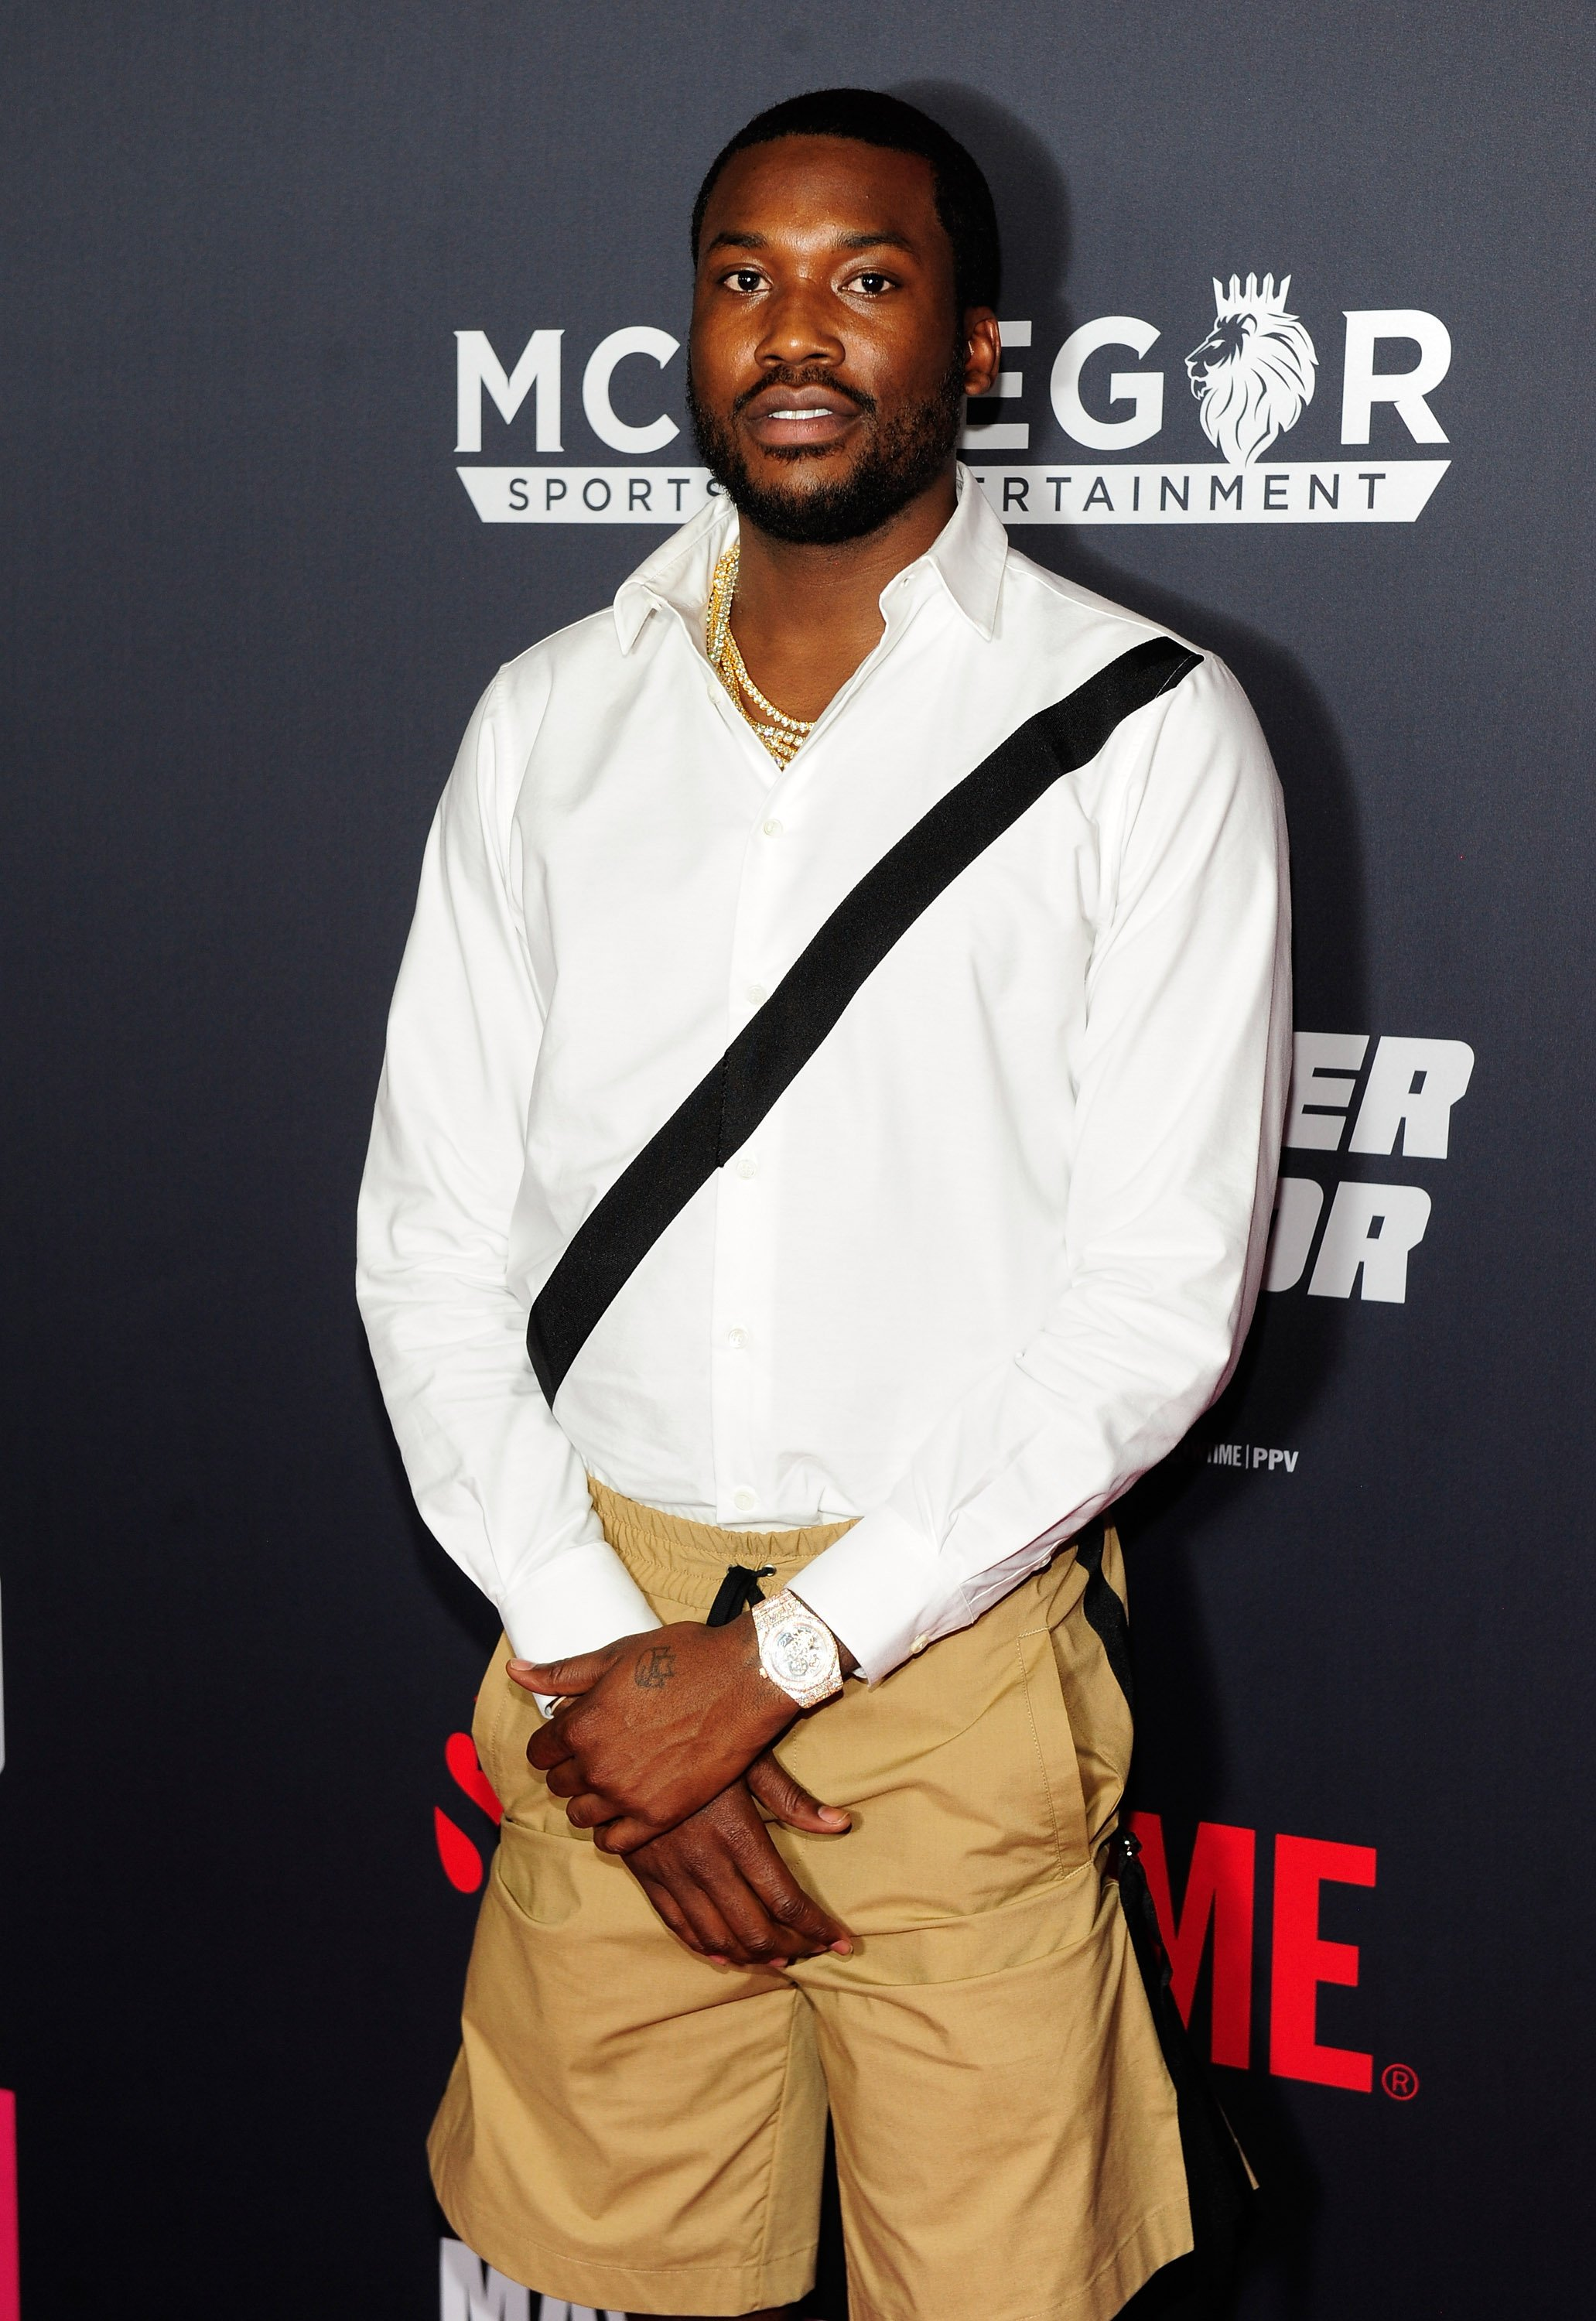 Meek Mill attending a VIP party before the Floyd Mayweather Jr.-Conor McGregor boxing match in Las Vegas in August 2017. | Photo: Getty Images